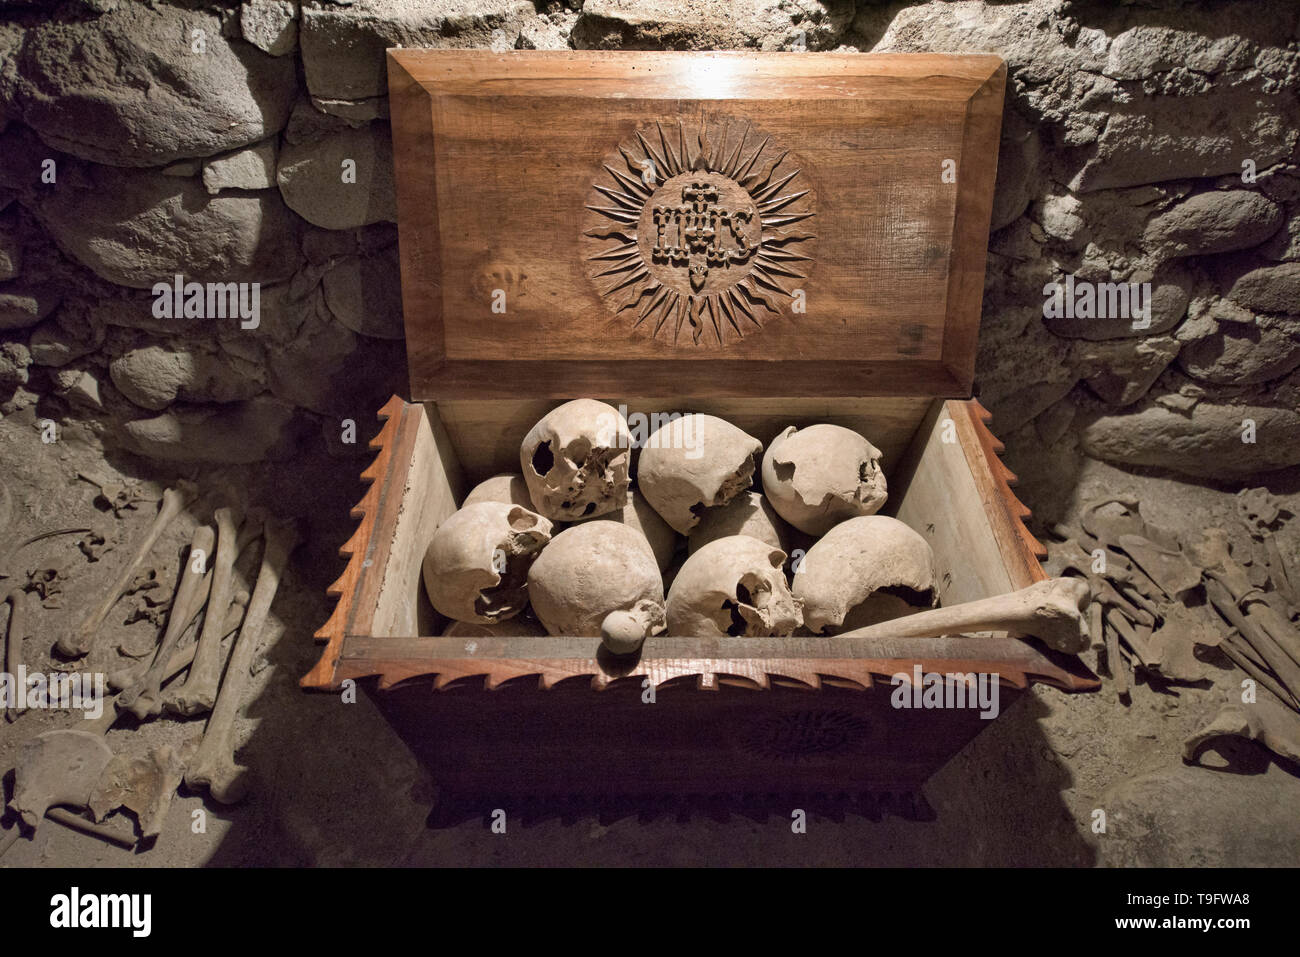 Monks skulls inside the crypt of the San Francisco Church and Convent, Potosí, Bolivia - Stock Image